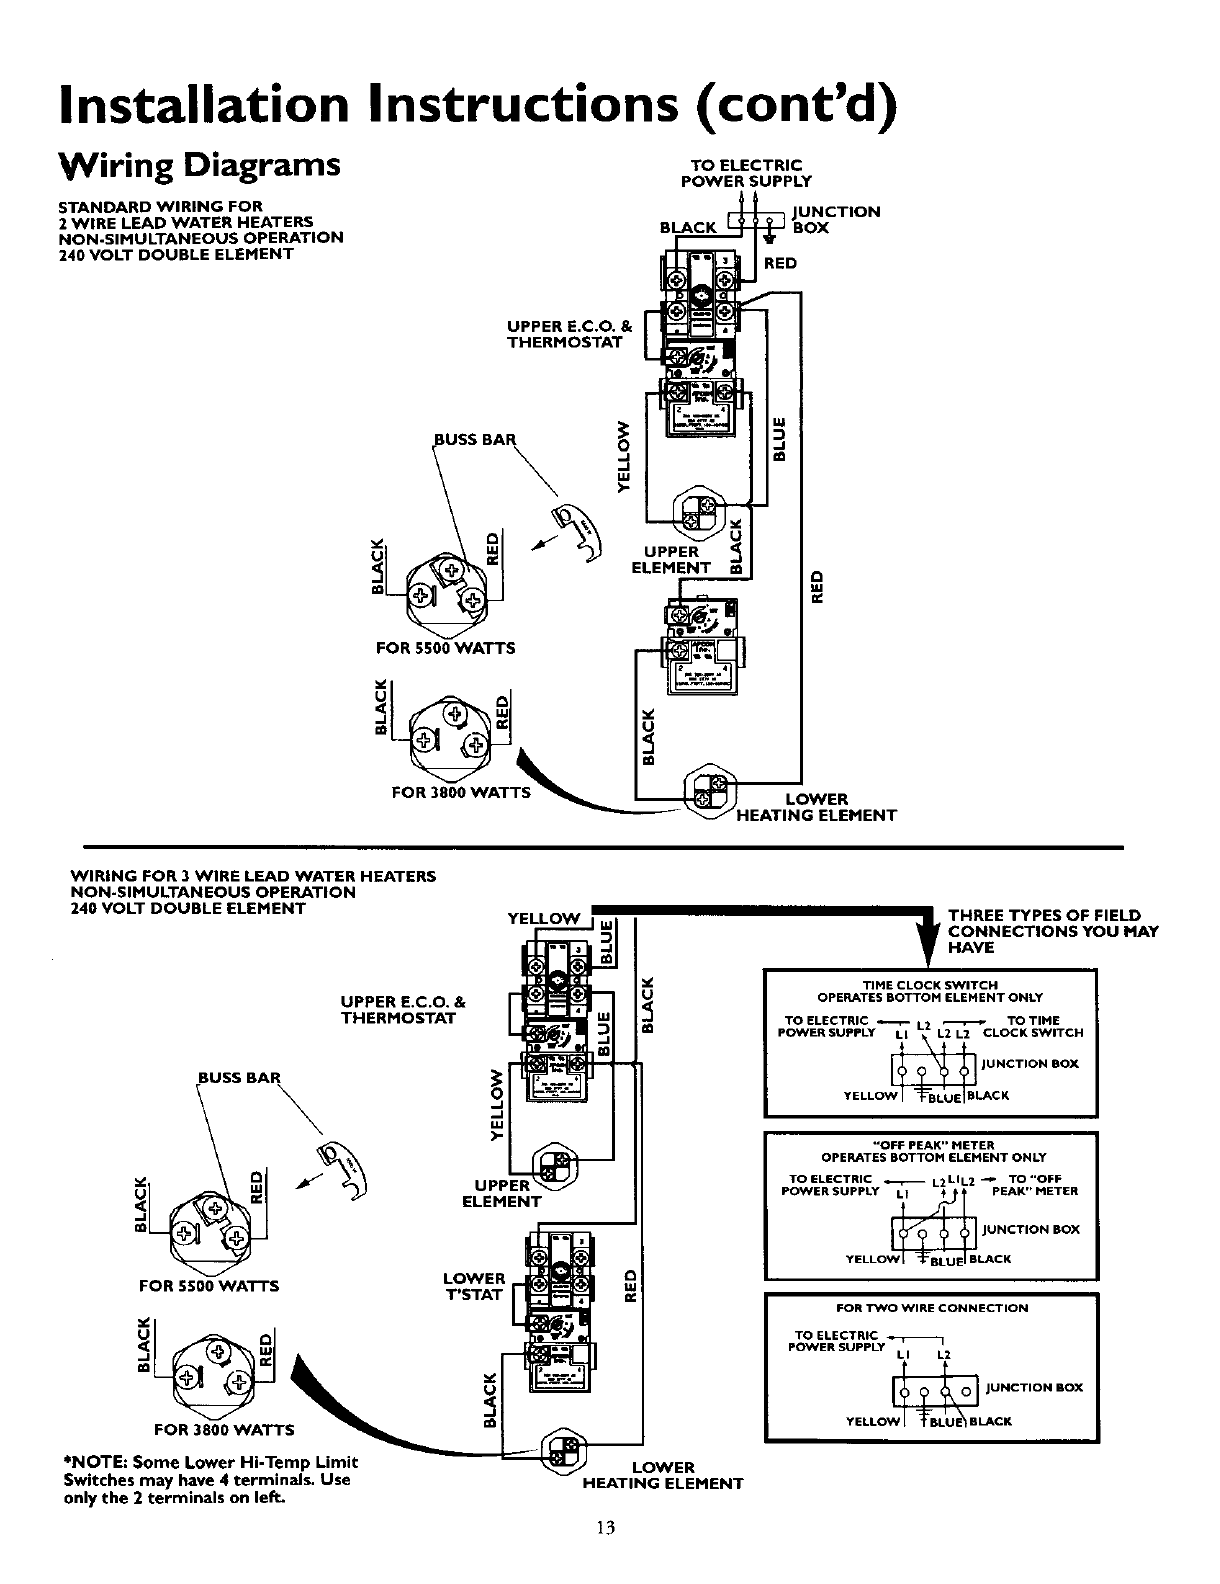 Page 13 of kenmore water heater 153320492 ht user guide installation instructions contd wiring diagrams ccuart Image collections